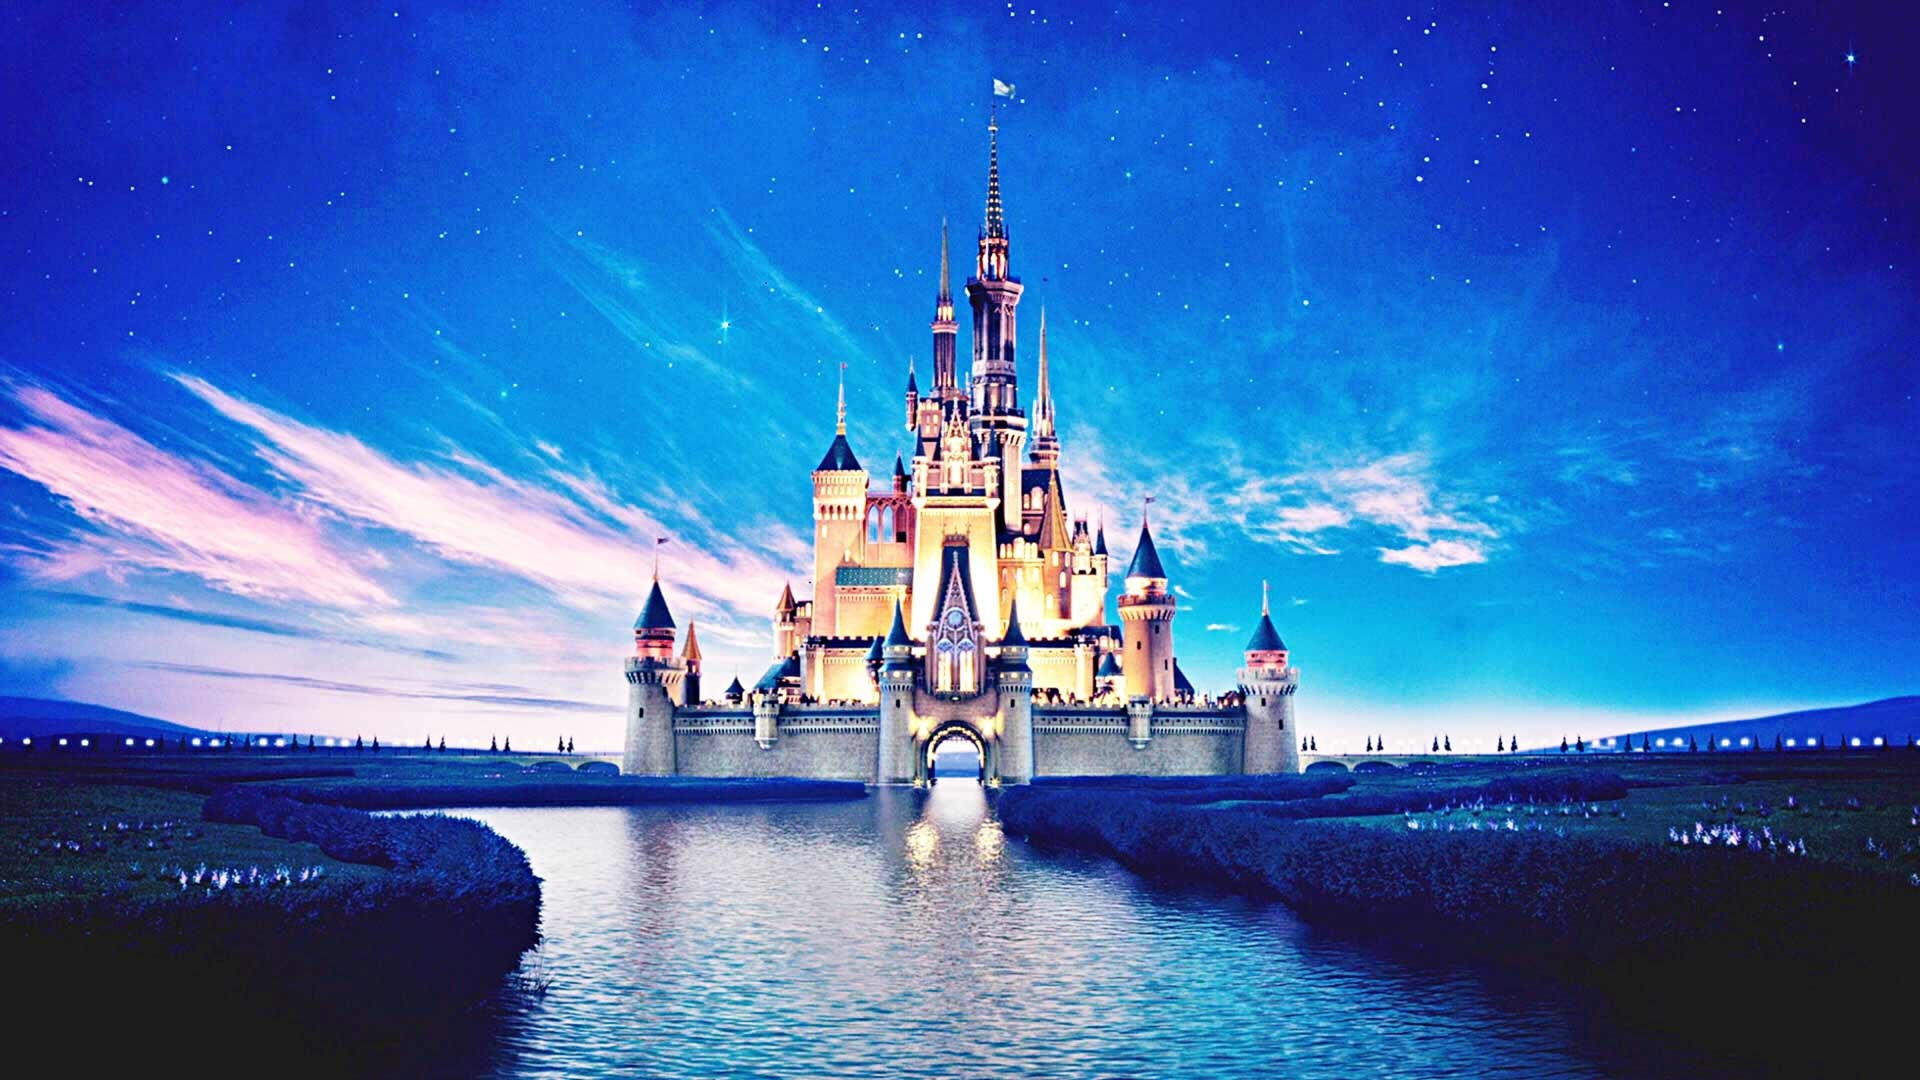 1920x1080 disney wallpapers hd disney castle wallpapers desktop background hd1